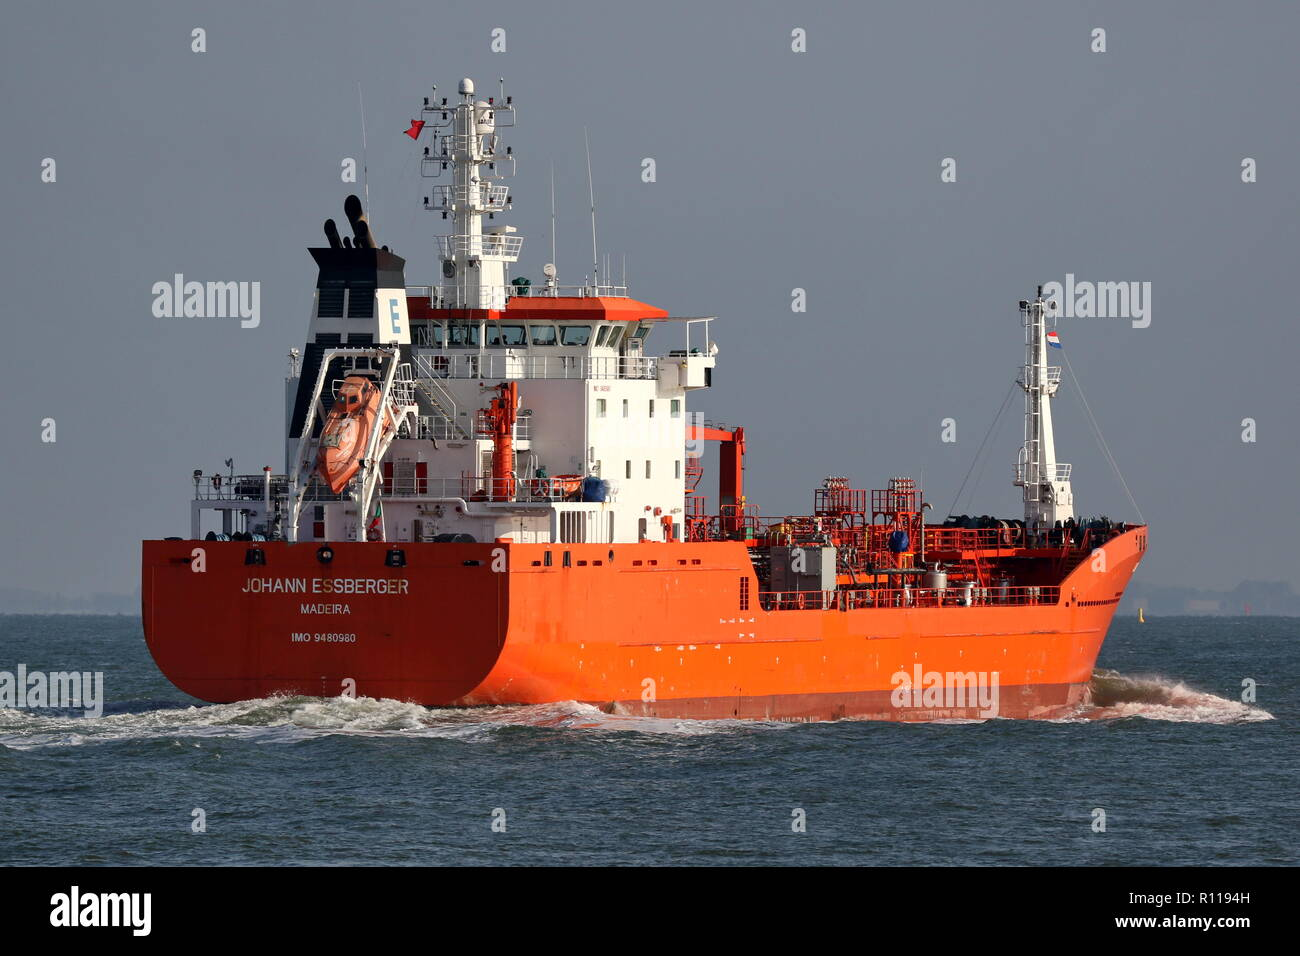 The tanker Johann Essberger passes on 19 October 2019 Terneuzen and continues towards Antwerp. - Stock Image